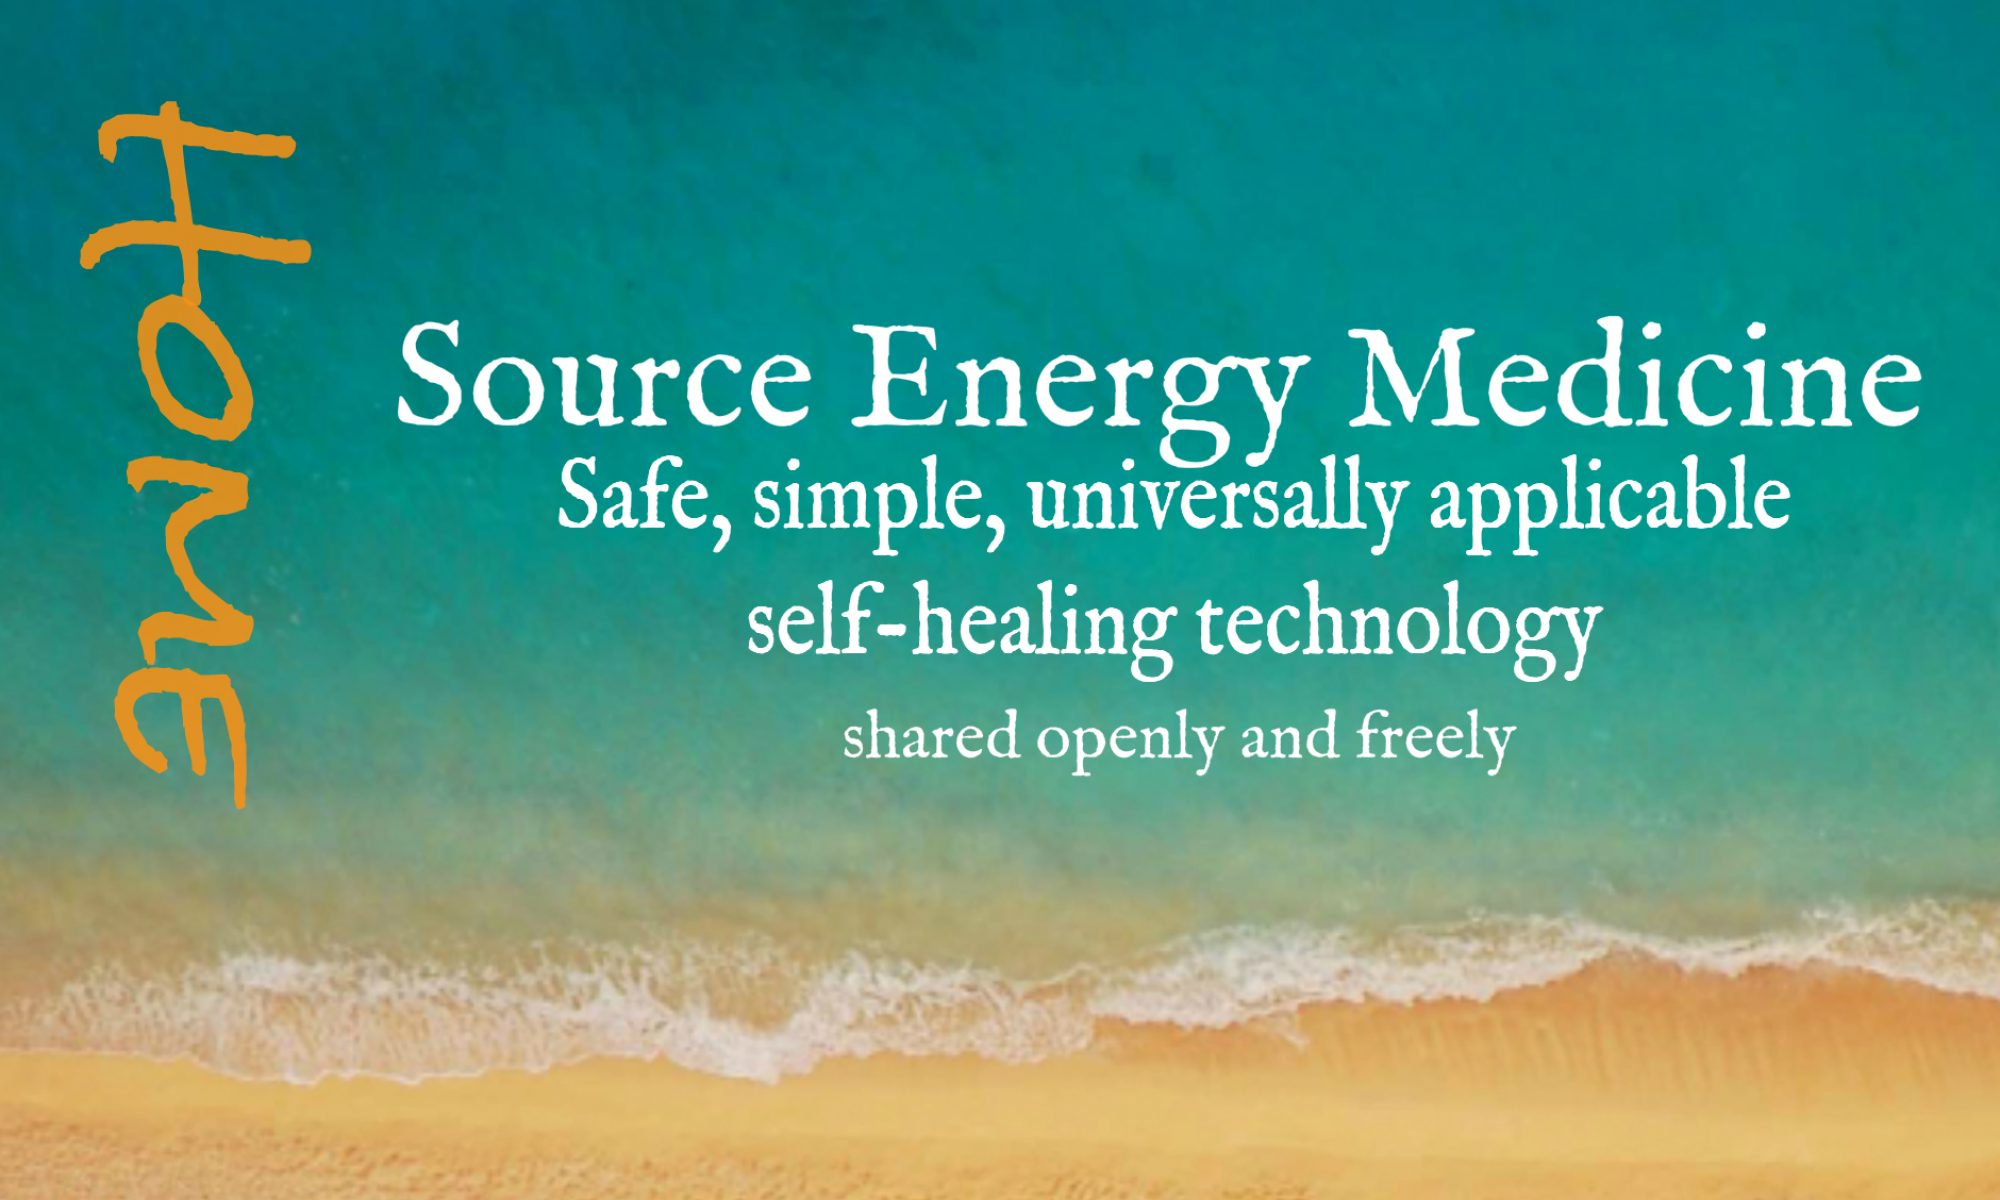 Source Energy Medicine